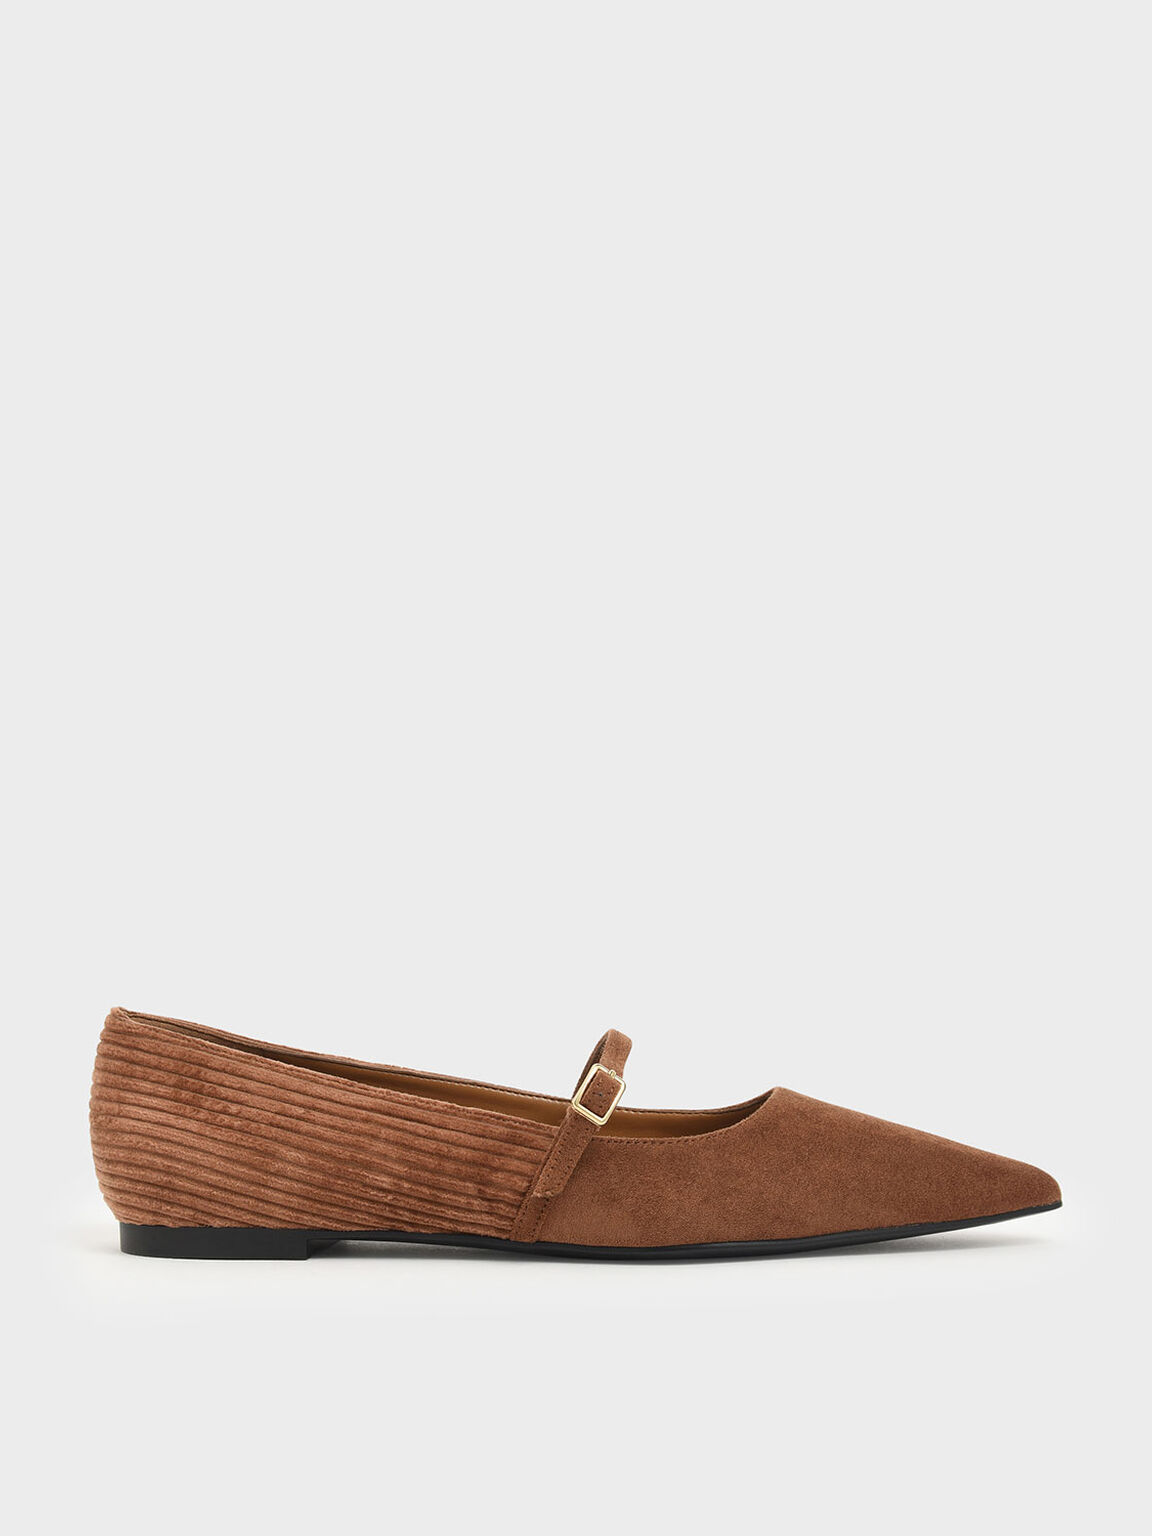 Pointed Toe Corduroy Mary Jane Flats, Mustard, hi-res